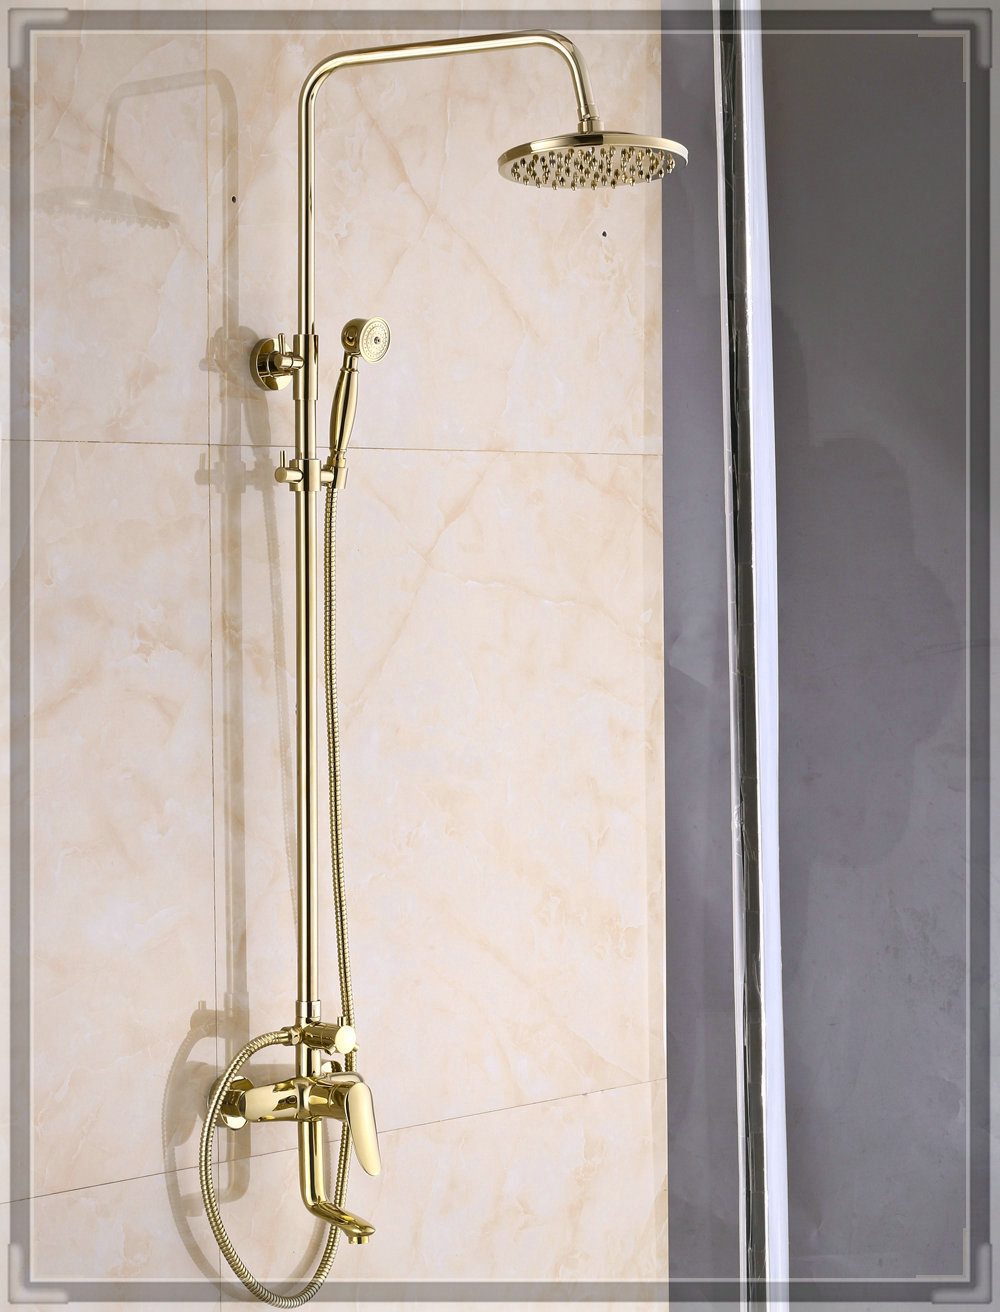 Rainfall gold brass shower faucet set 8 inch shower head handheld sprayer water bathroom for Bathroom shower heads and faucets